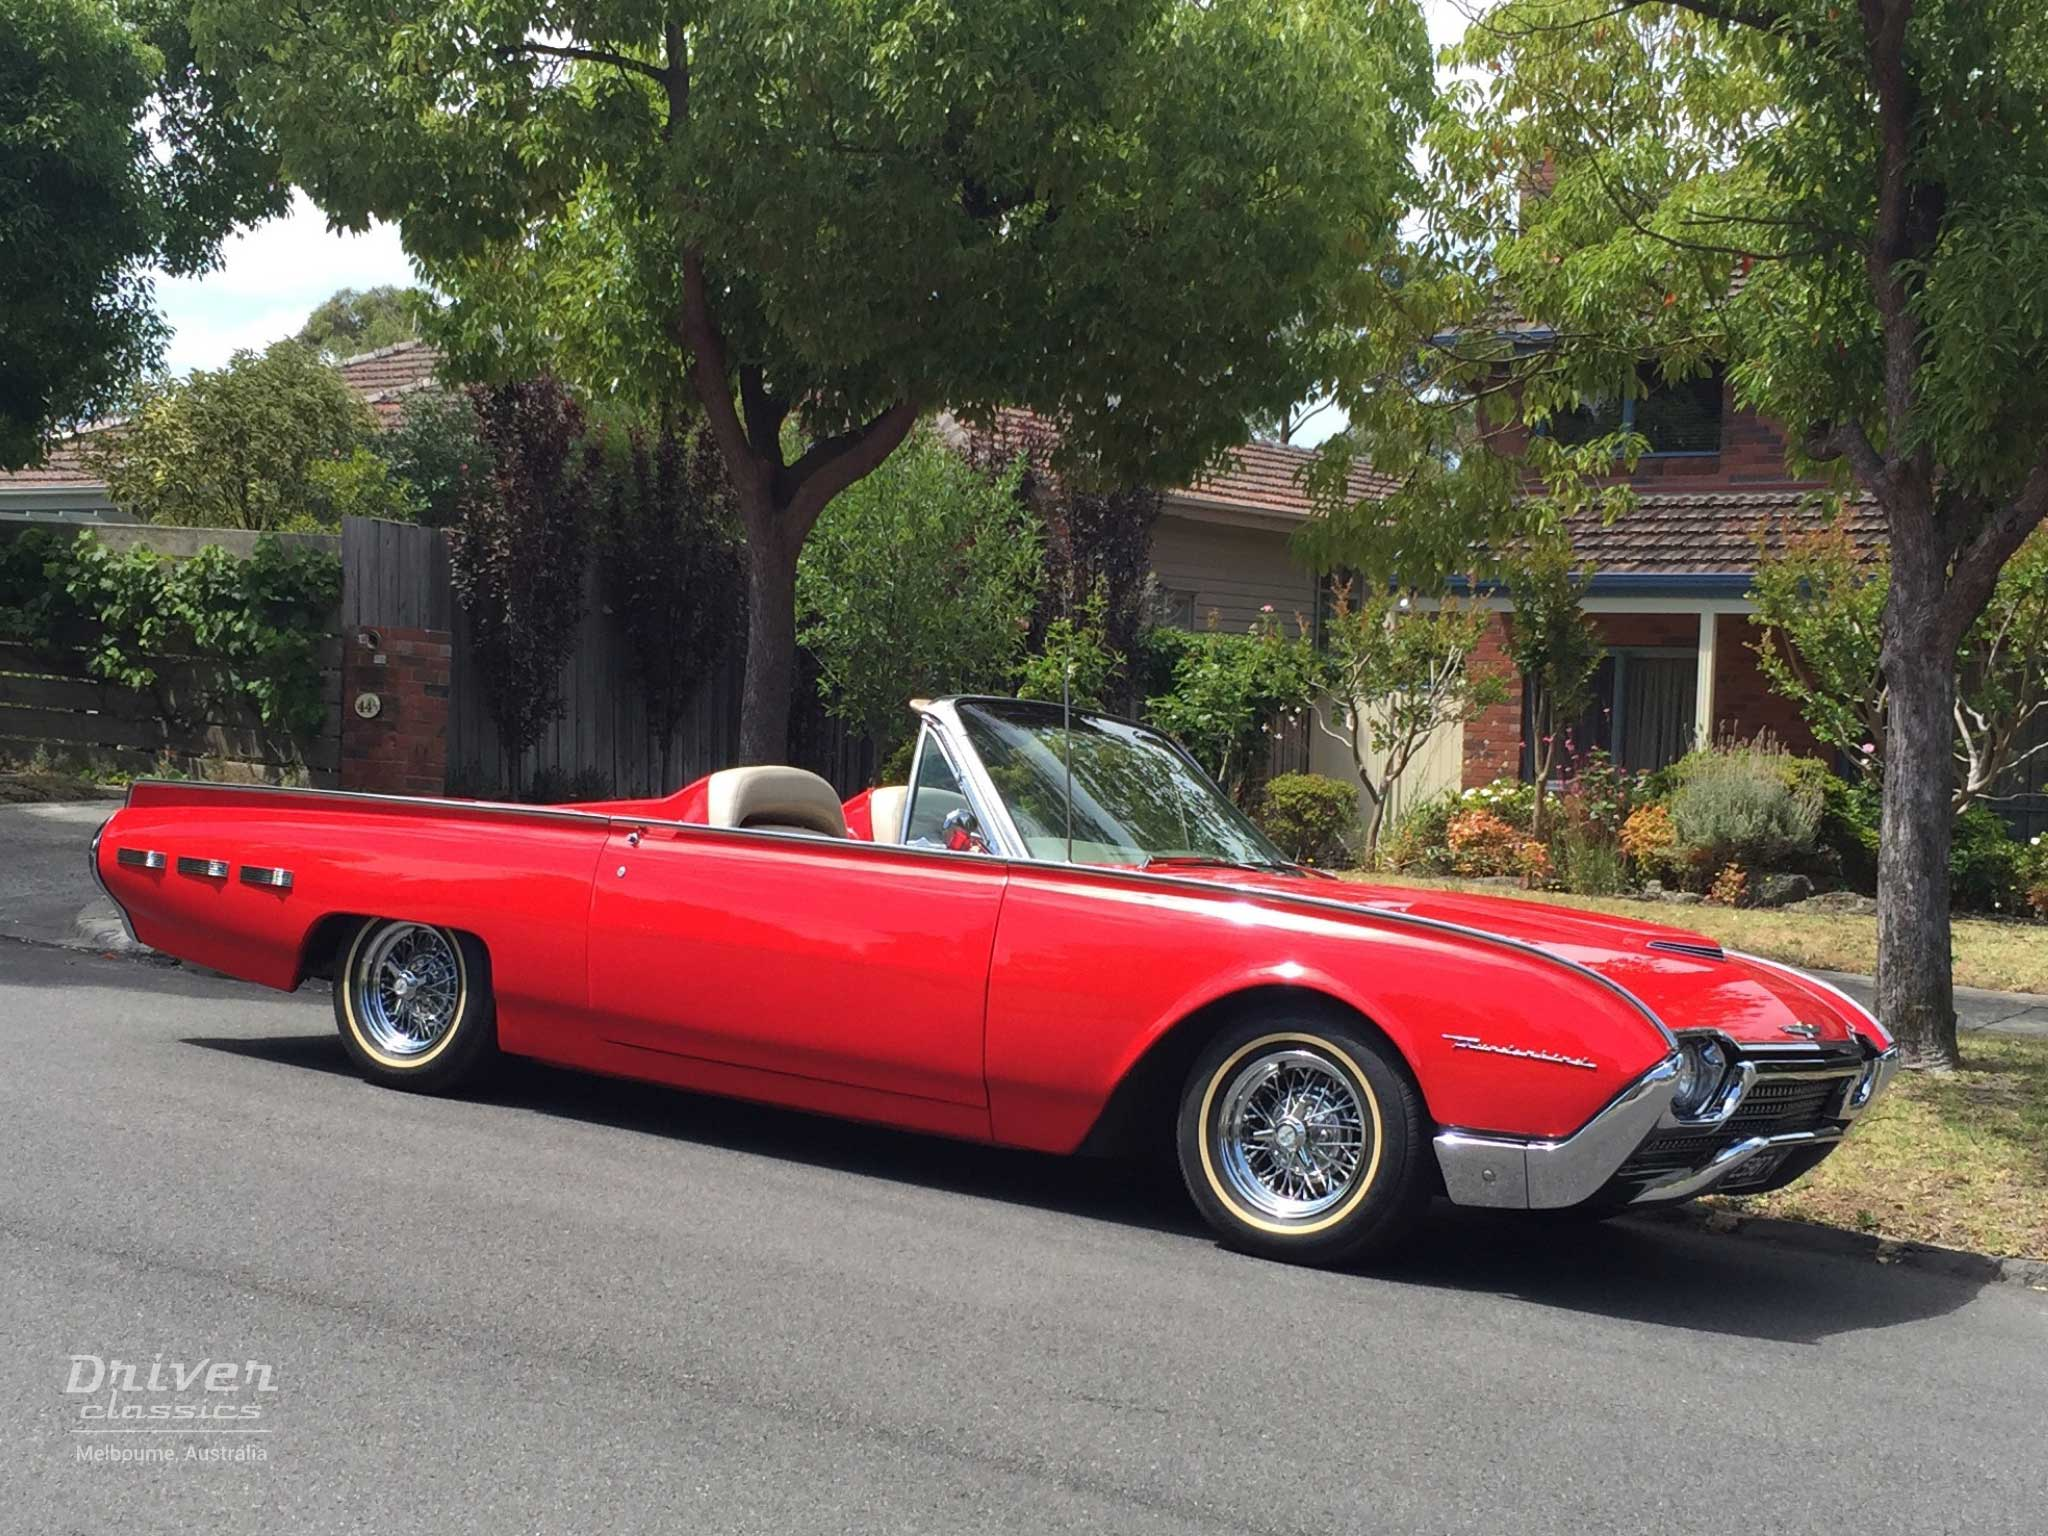 1962 Ford Thunderbird Roadster front and side